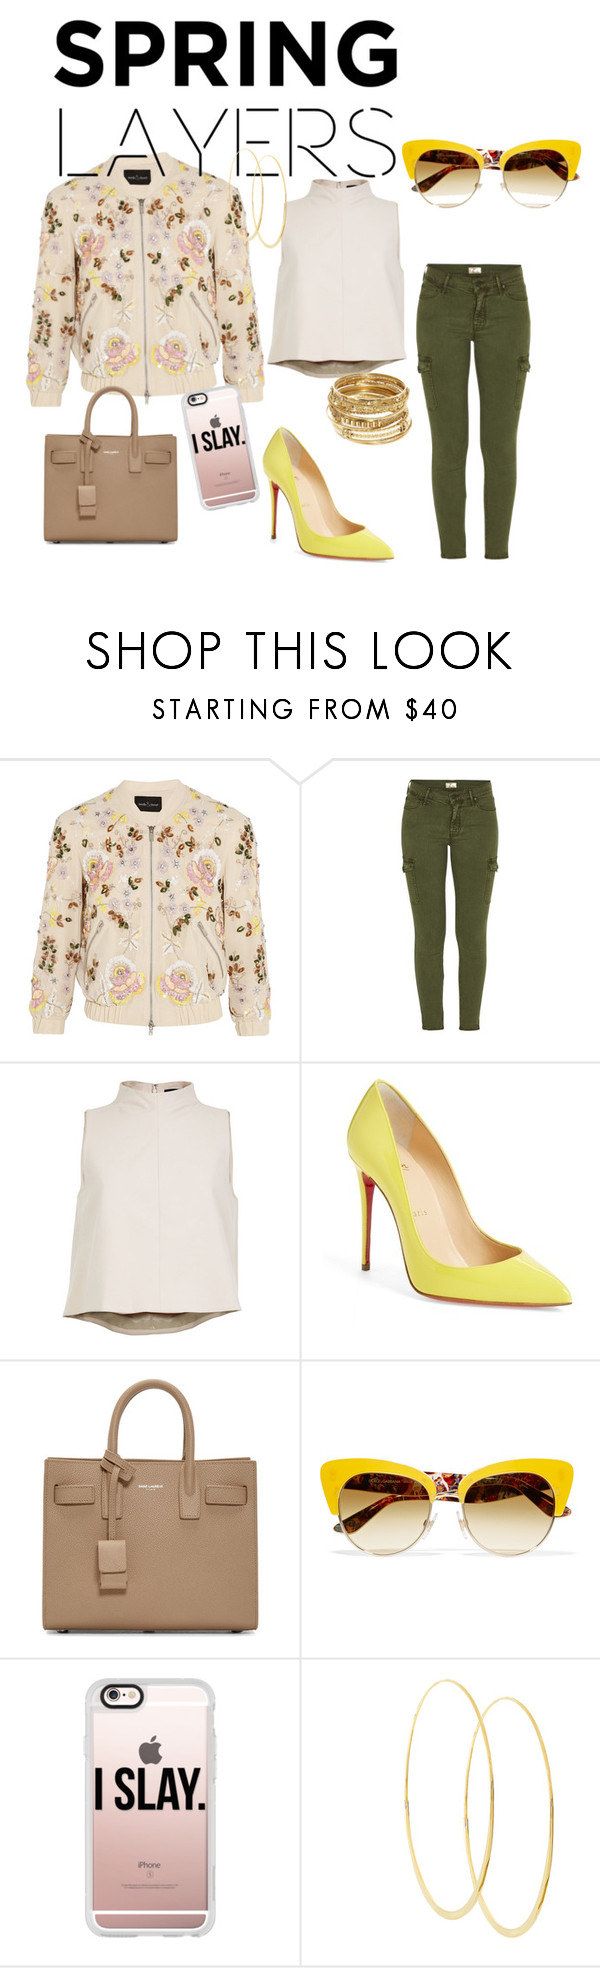 """""""Spring layers"""" by sidne-alexander ❤ liked on Polyvore featuring Needle & Thread, Mother, TIBI, Christian Louboutin, Yves Saint Laurent, Dolce&Gabbana, Casetify, Lana and ABS by Allen Schwartz"""